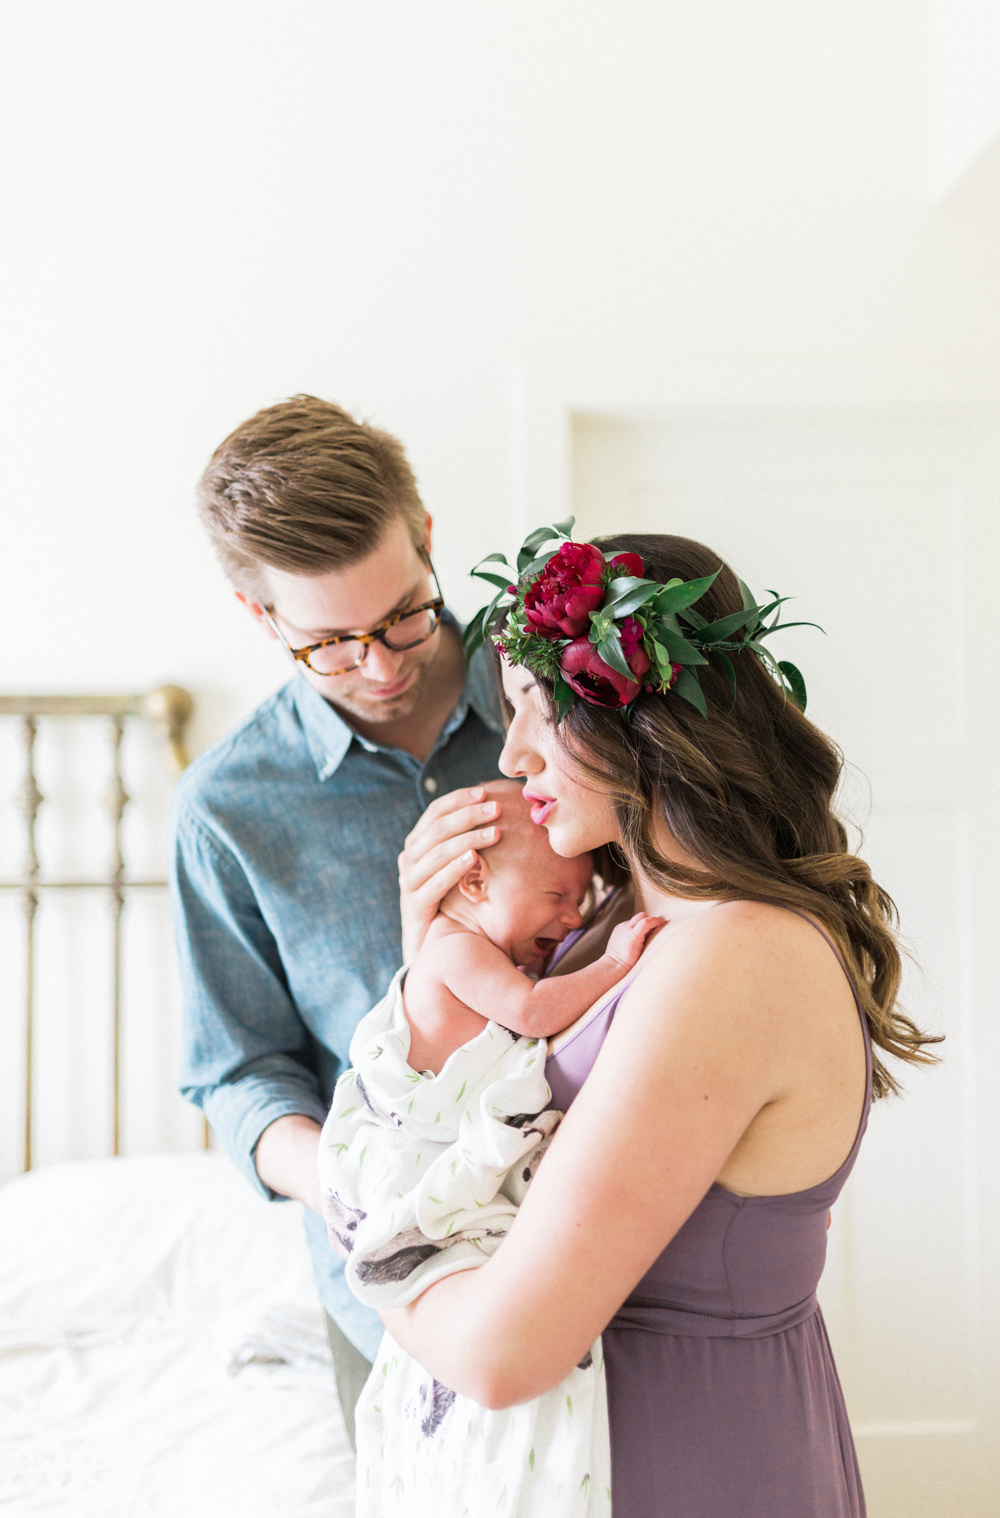 Calgary-Newborn-Photography-in-home-session-19.jpg